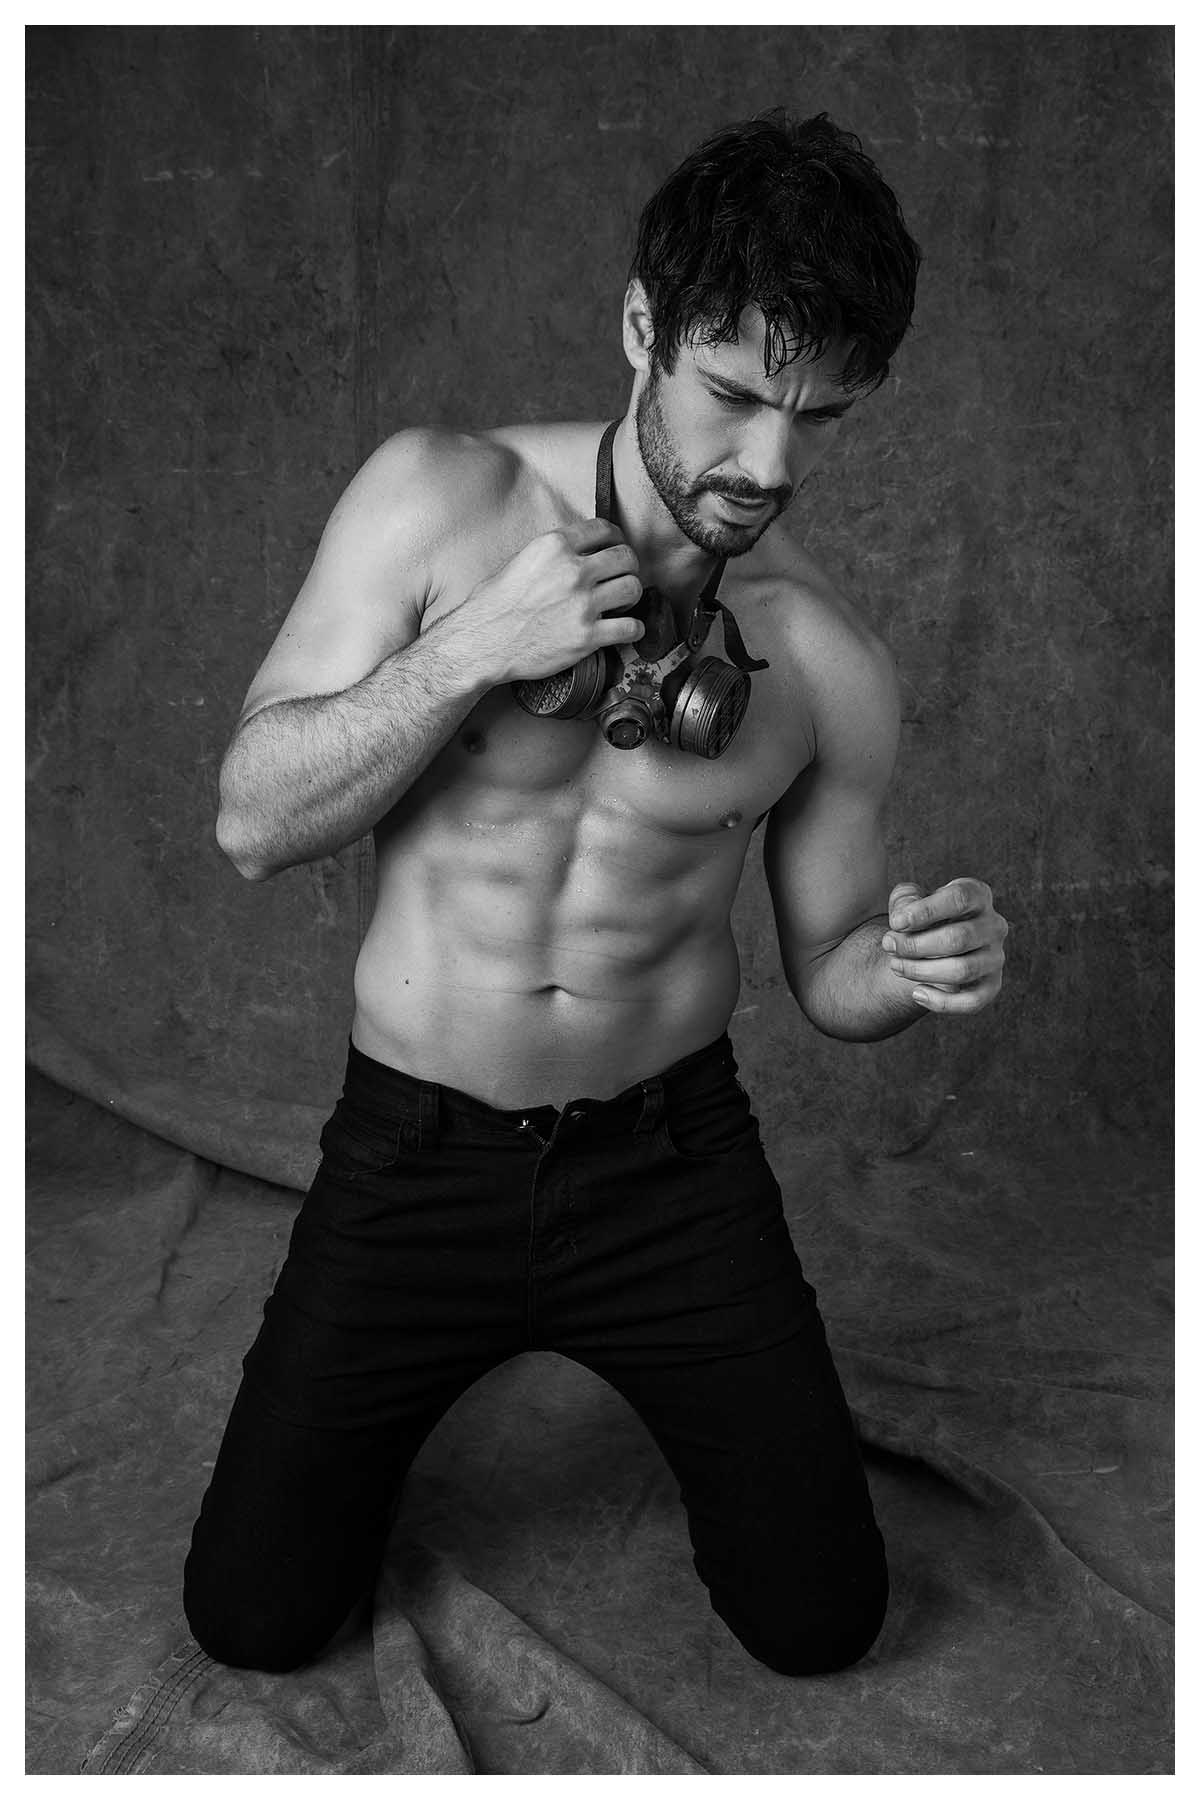 Pedro Soltz by Marcio Farias for Brazilian Male Model